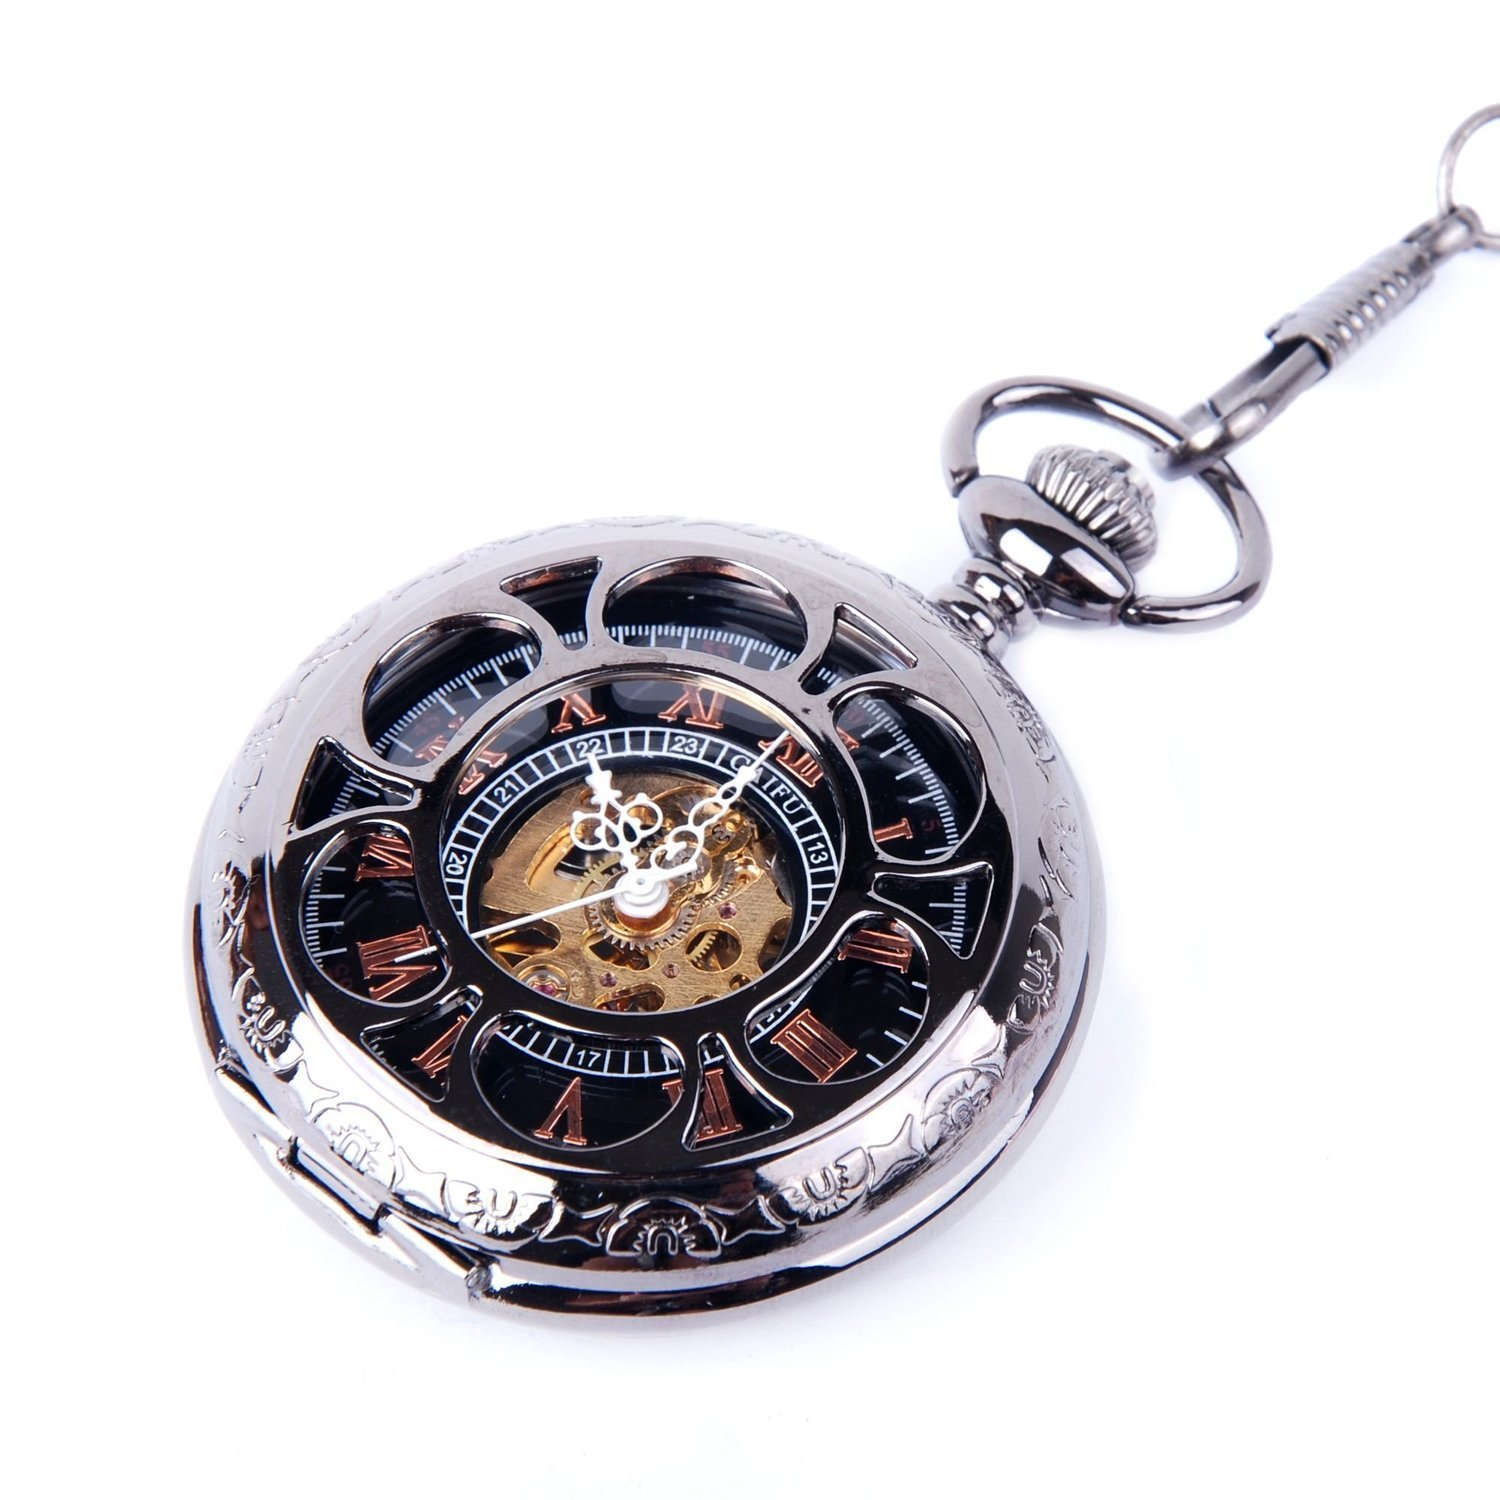 afa3f53ee Pocket Watch with Chain Black Dial Steampunk Skeleton Mechanical Hand Wind  Up Movement Cosplay Half Hunter Watch-in Pocket & Fob Watches from Watches  on ...